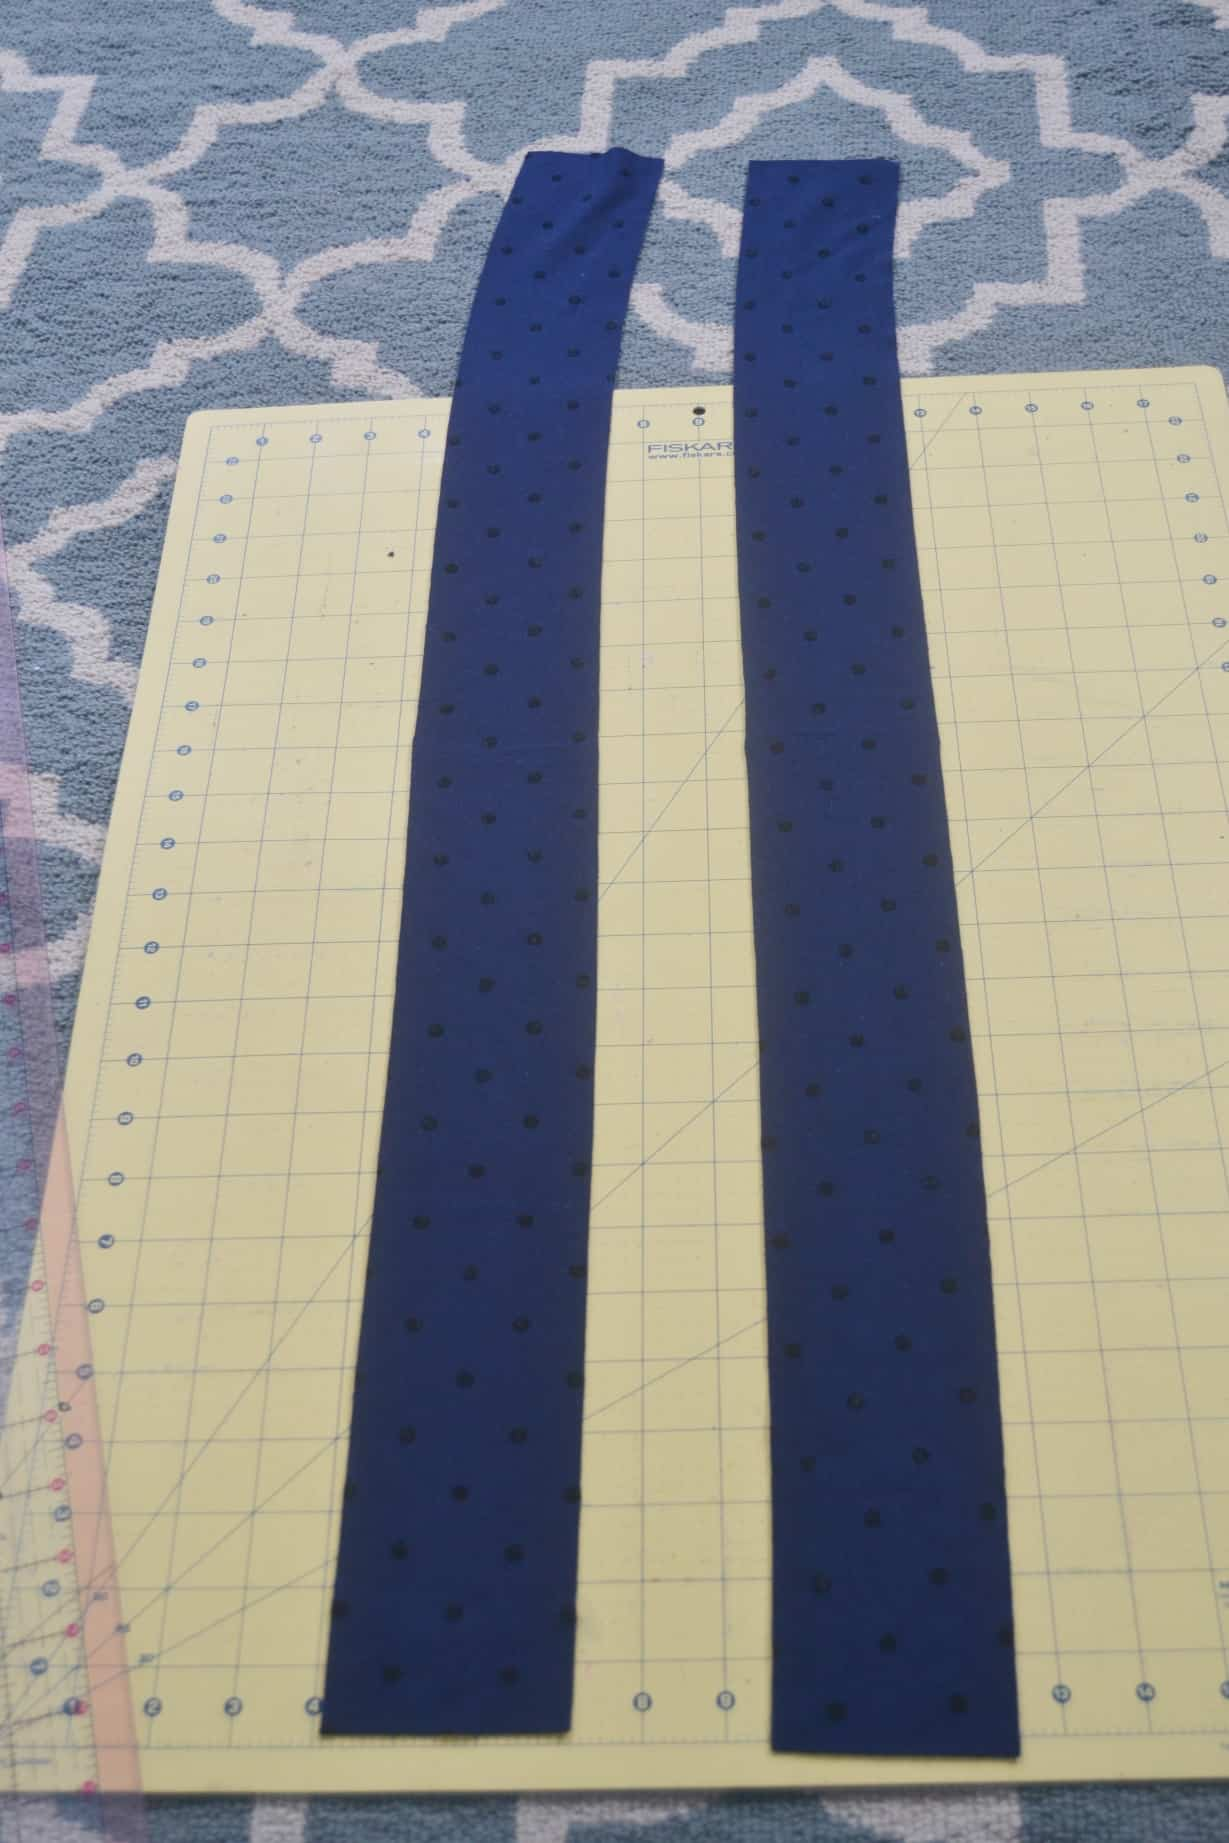 The two fabric rectangles cut out to make the diy knotted headband